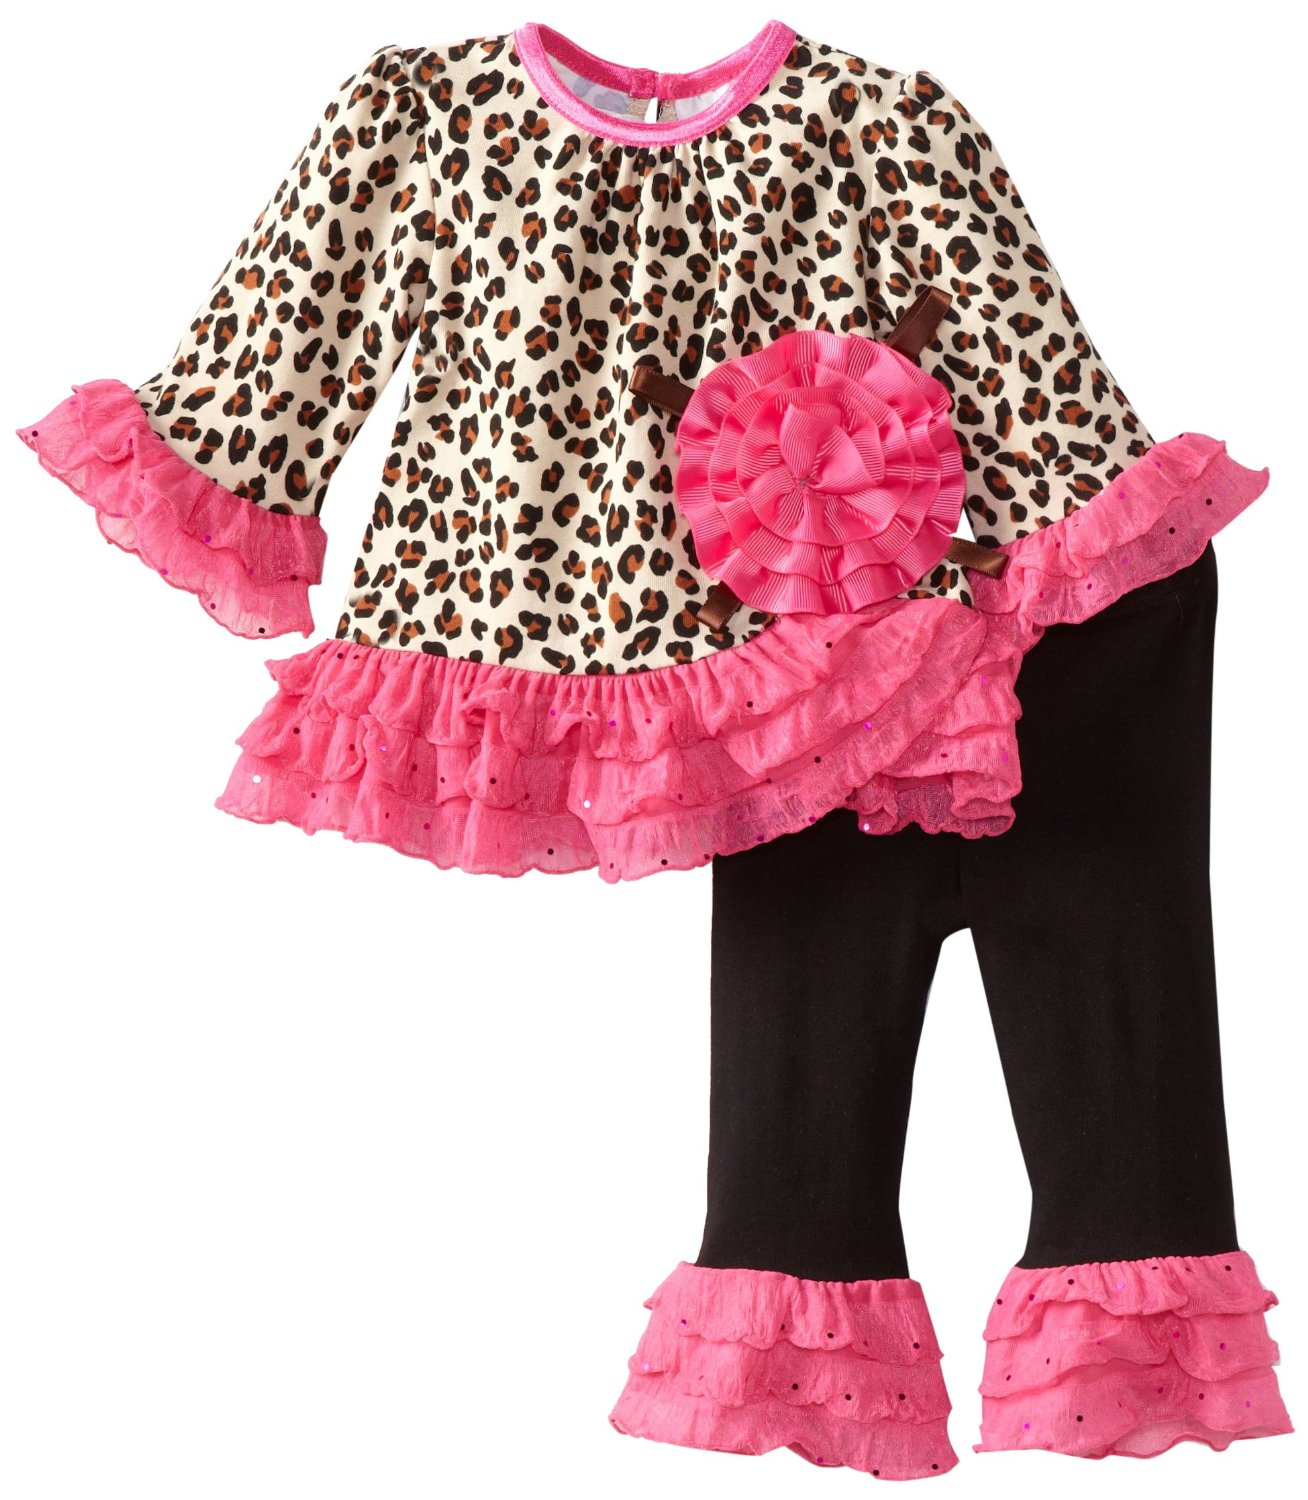 Shop Target for Baby Girl Clothing you will love at great low prices. Spend $35+ or use your REDcard & get free 2-day shipping on most items or same-day pick-up in store.